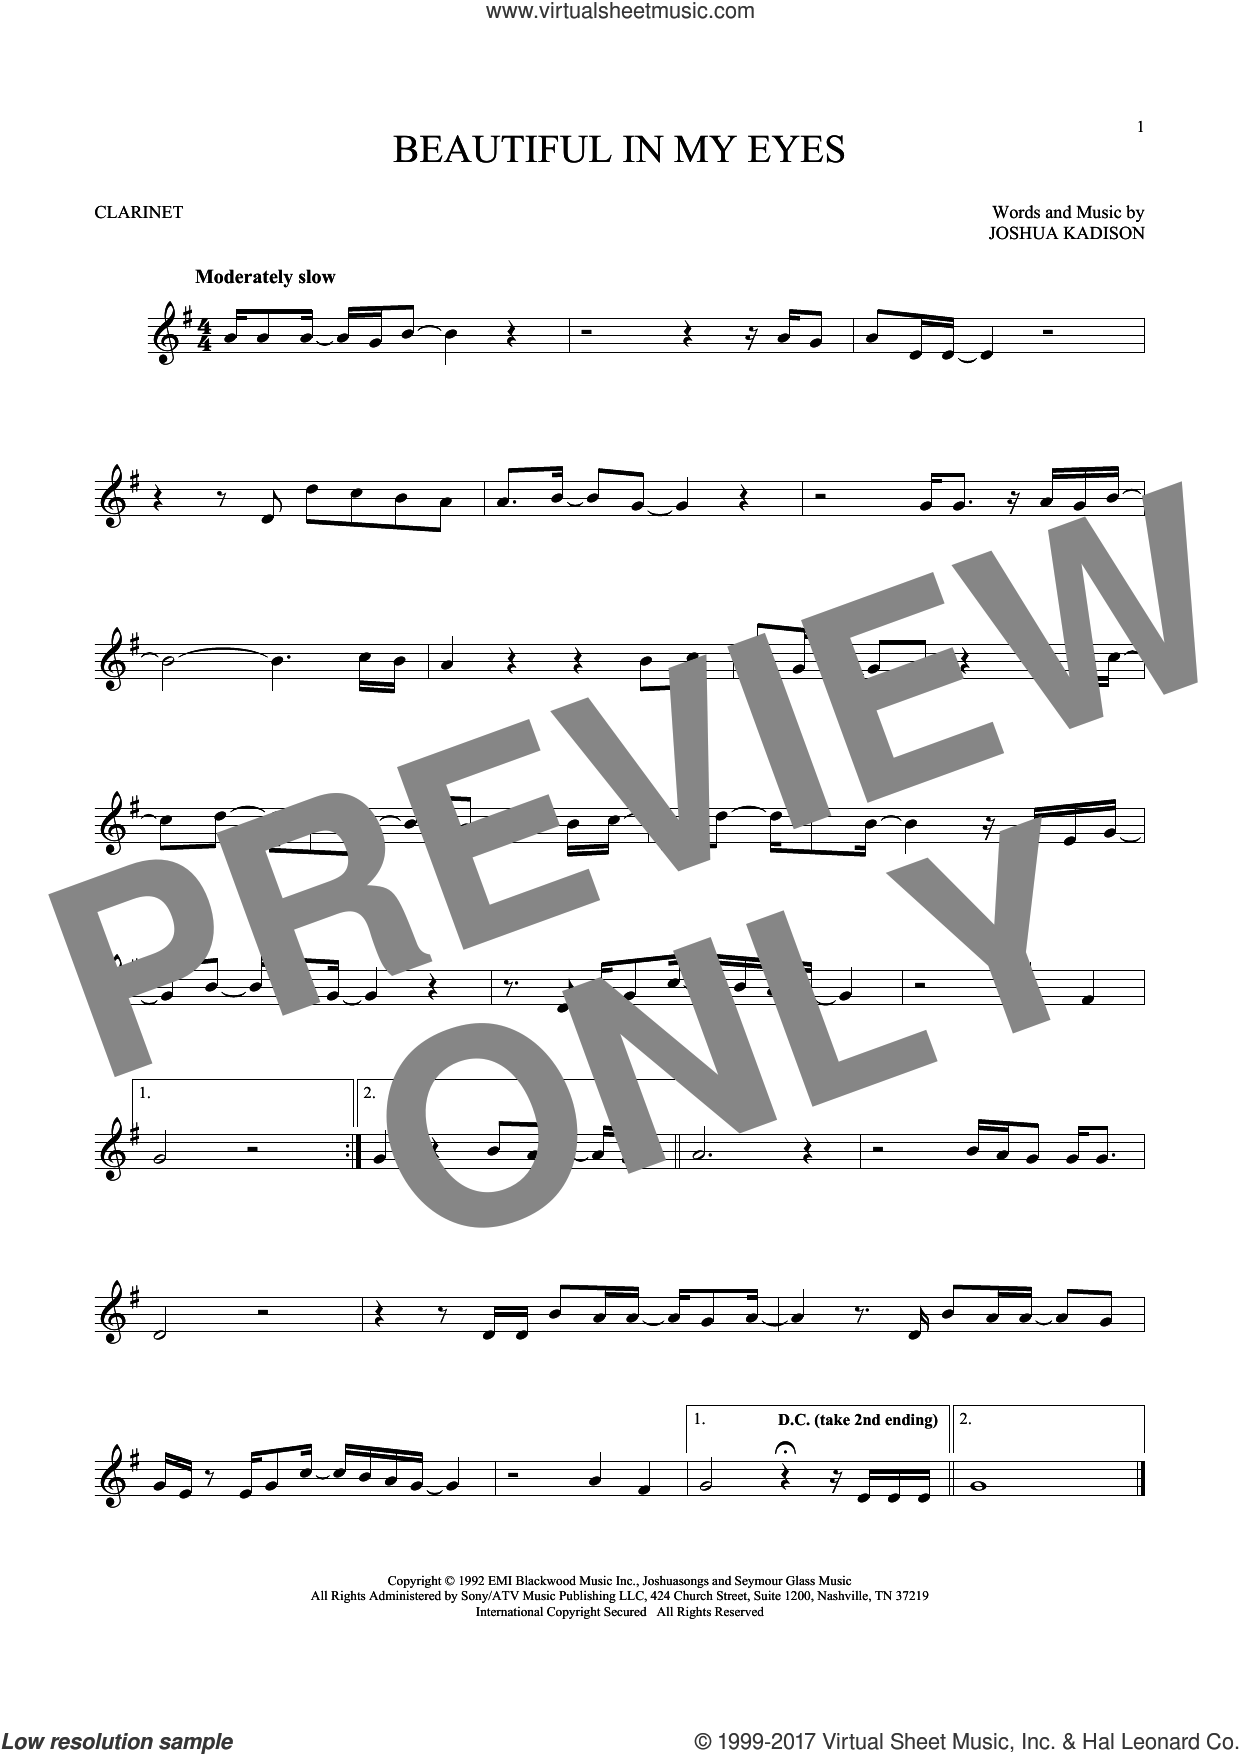 Beautiful In My Eyes sheet music for clarinet solo by Joshua Kadison, intermediate skill level